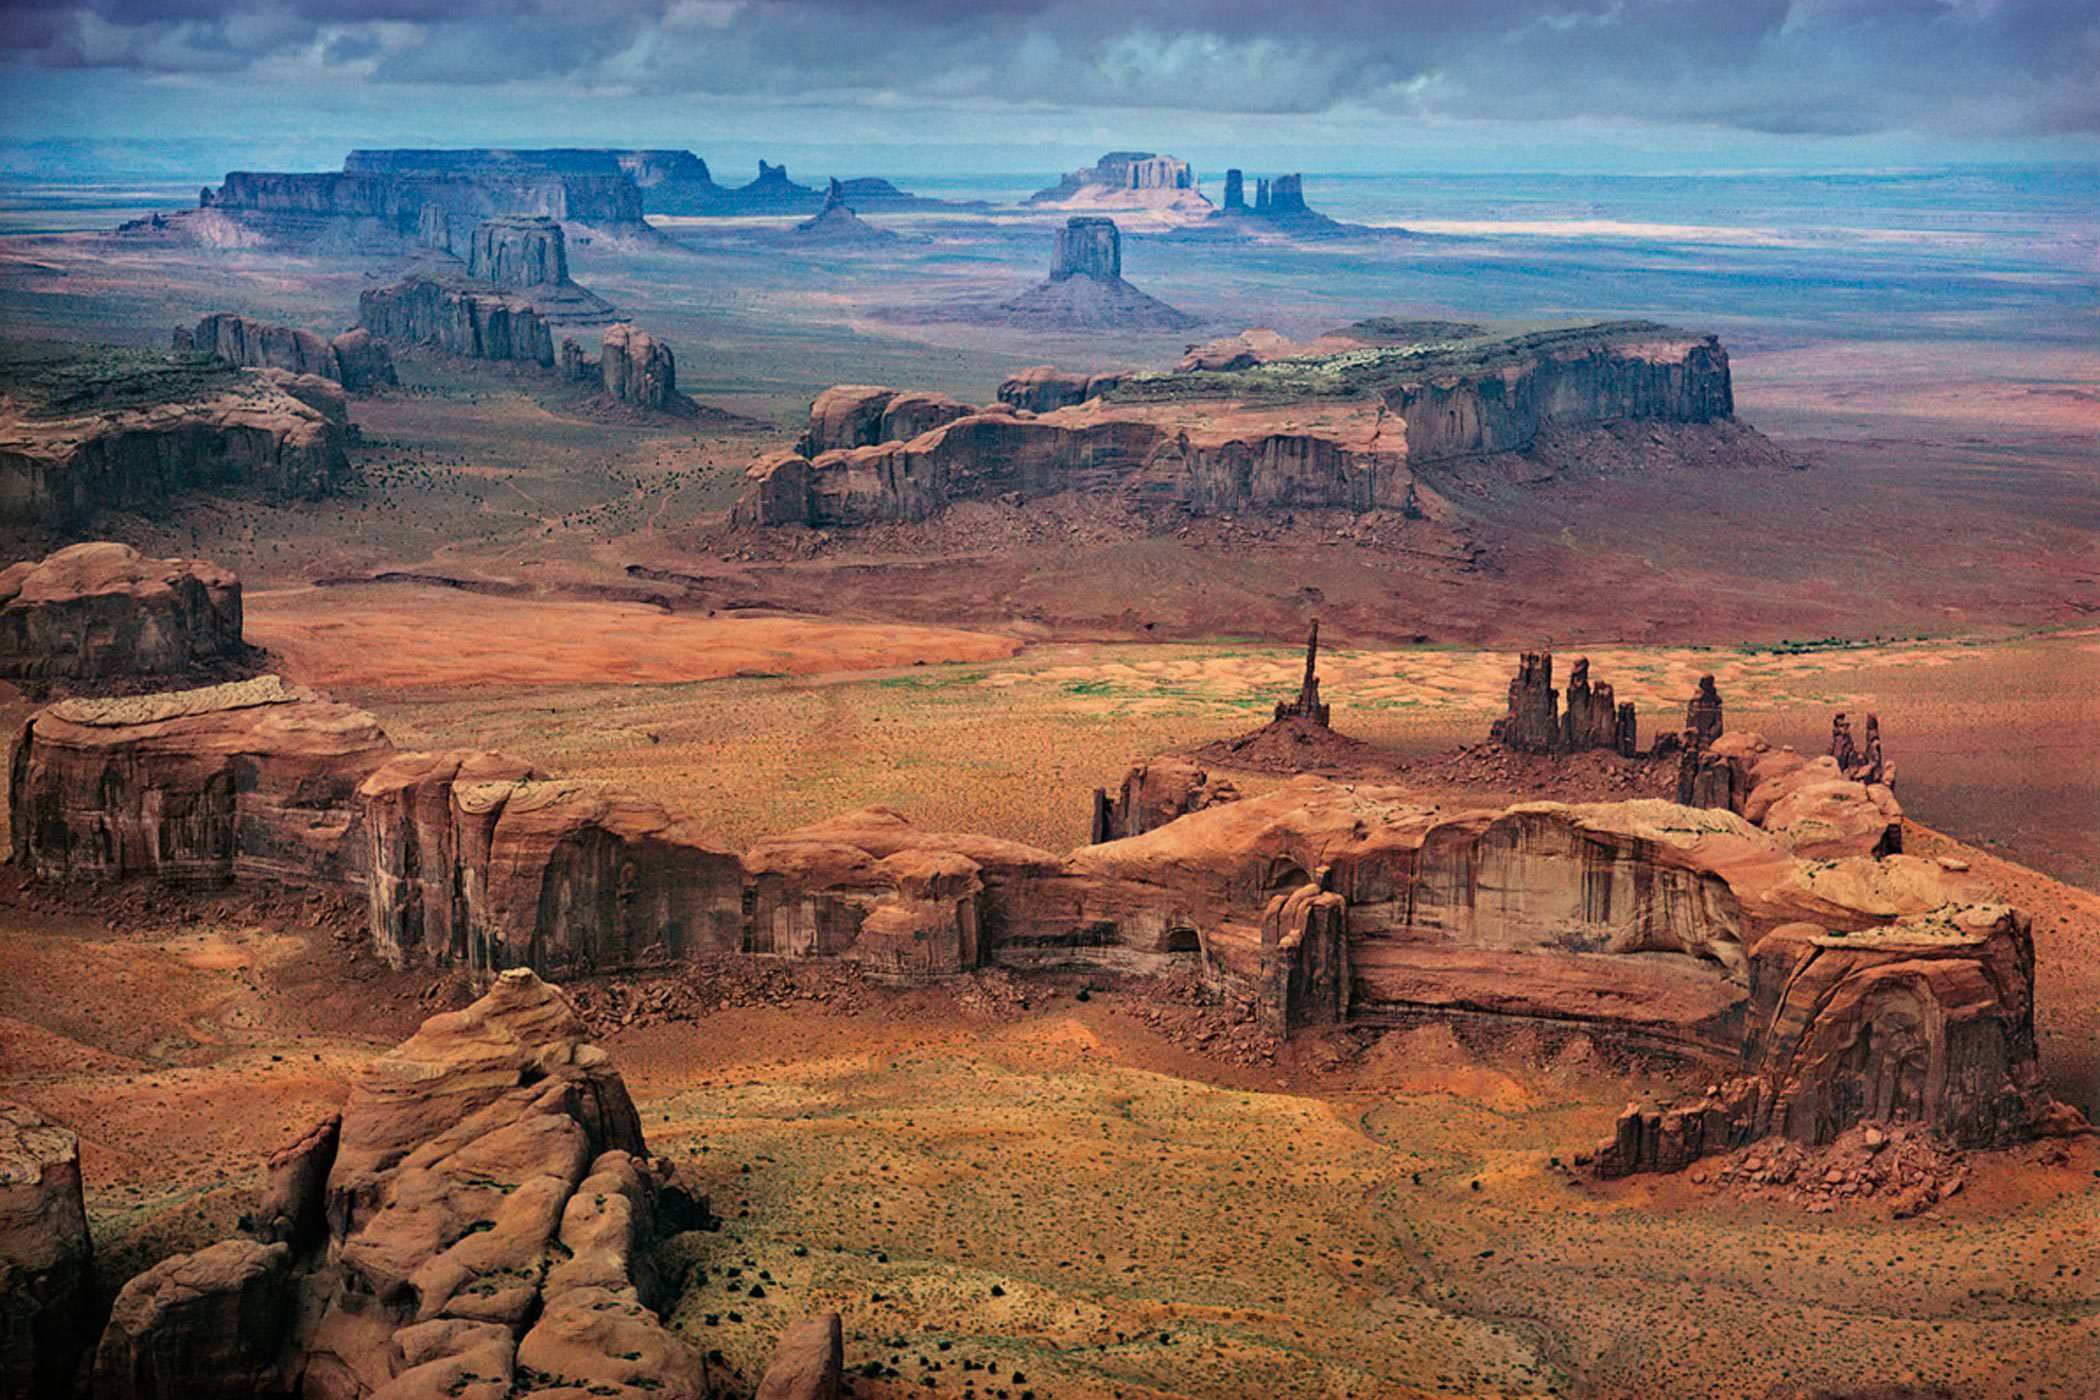 Ernst Haas Photographie, Monument Valley, Utah, USA, 1962